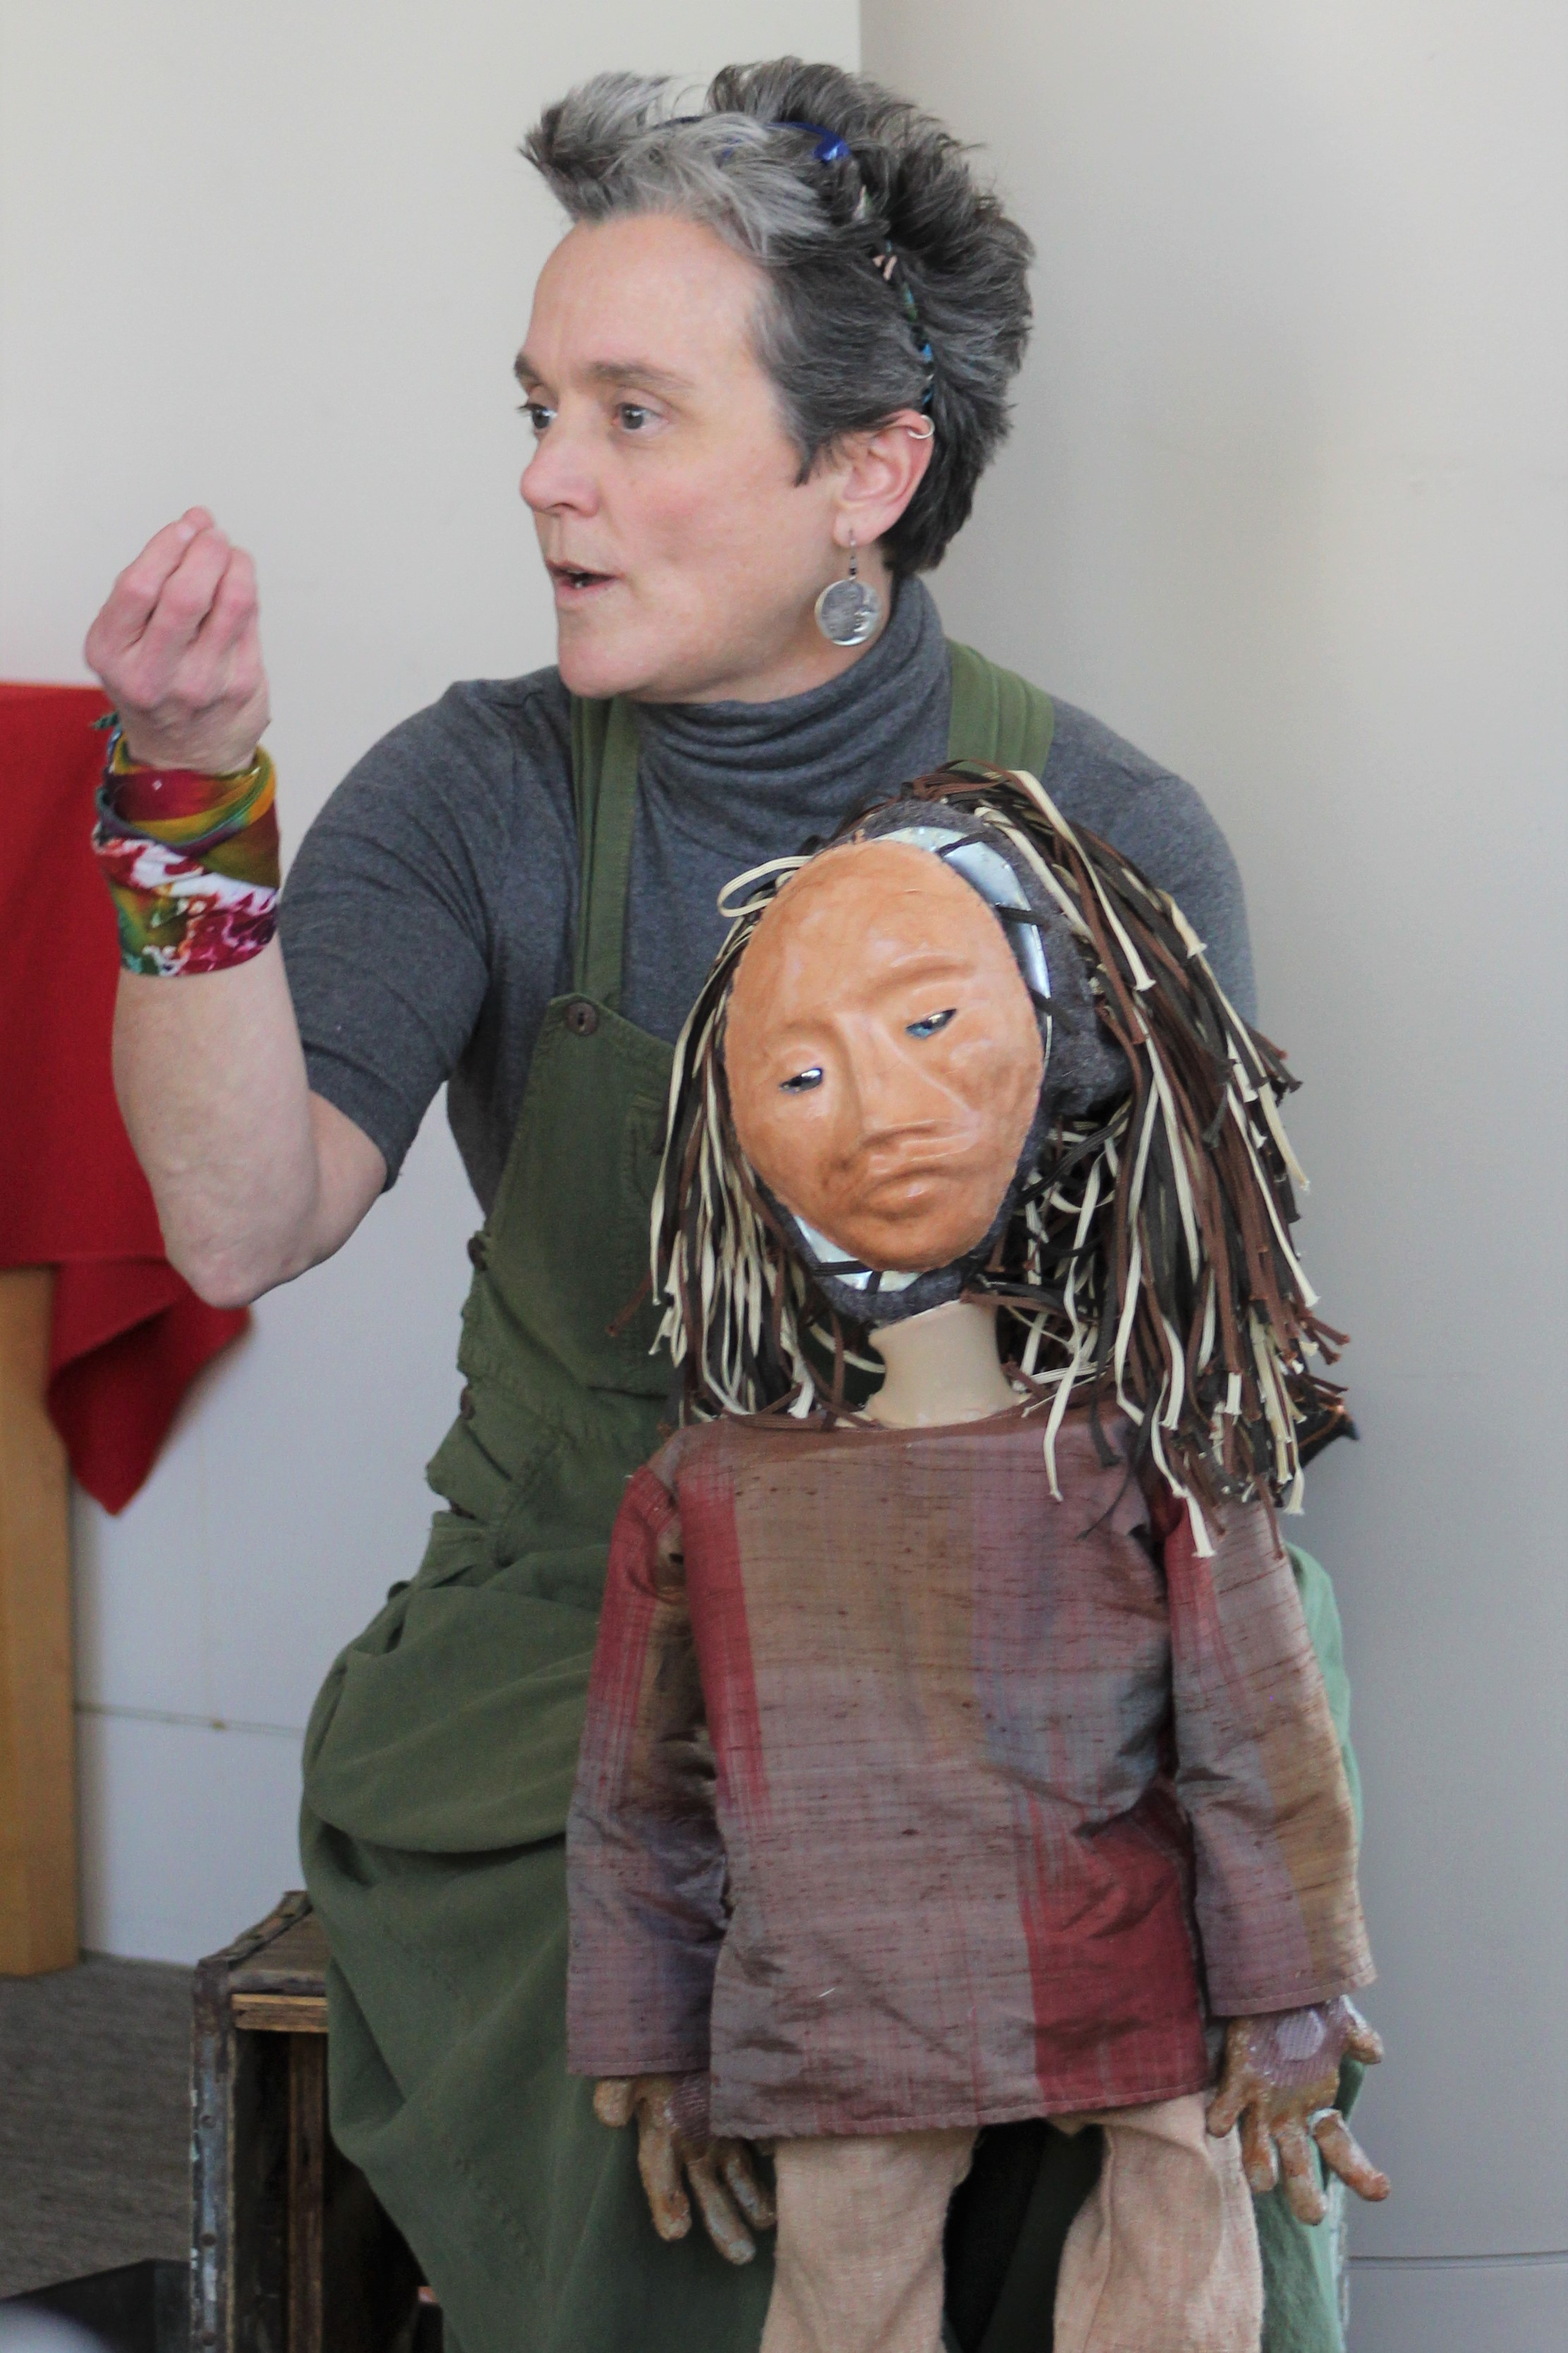 Sherry Harper-McCombs showing how to manipulate her puppet